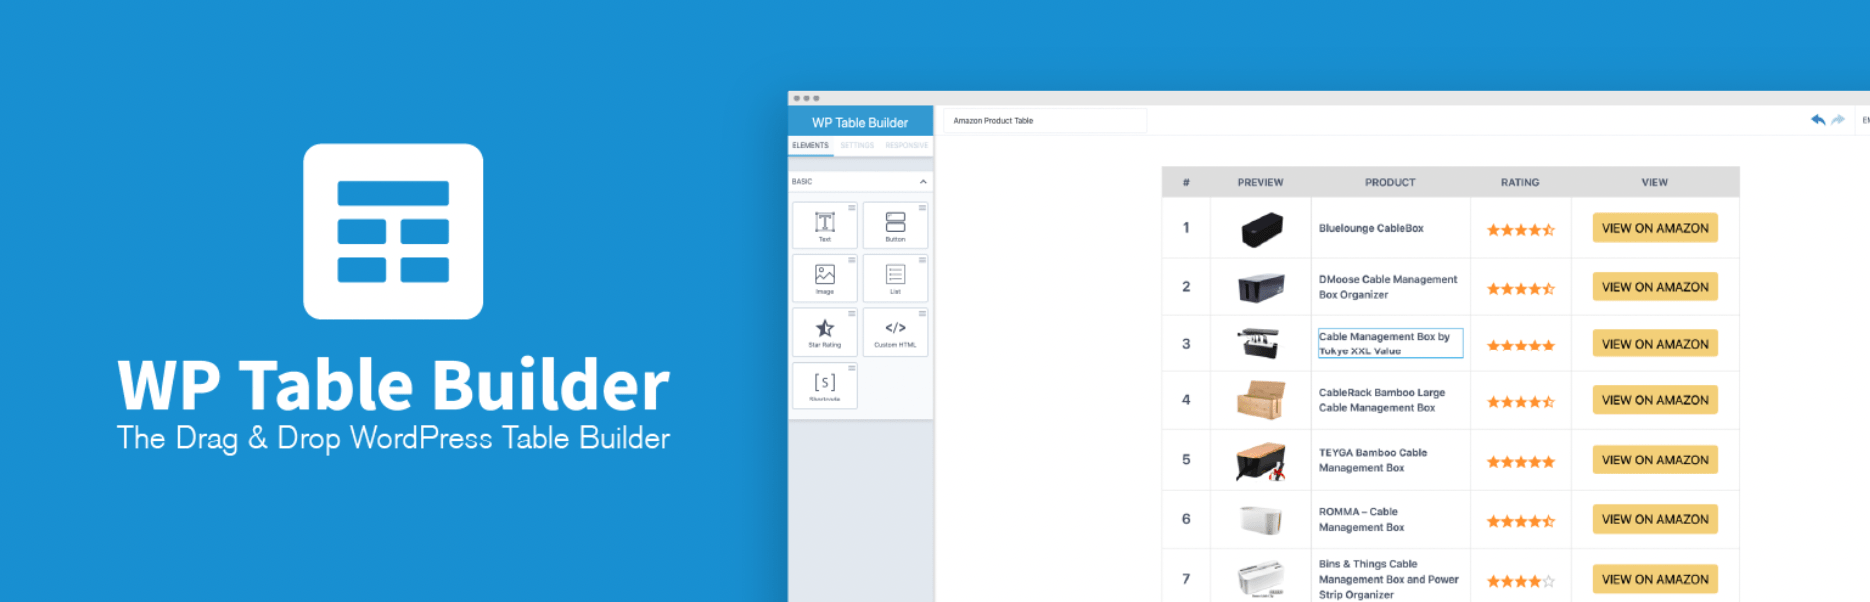 The WP Table Builder plugin.